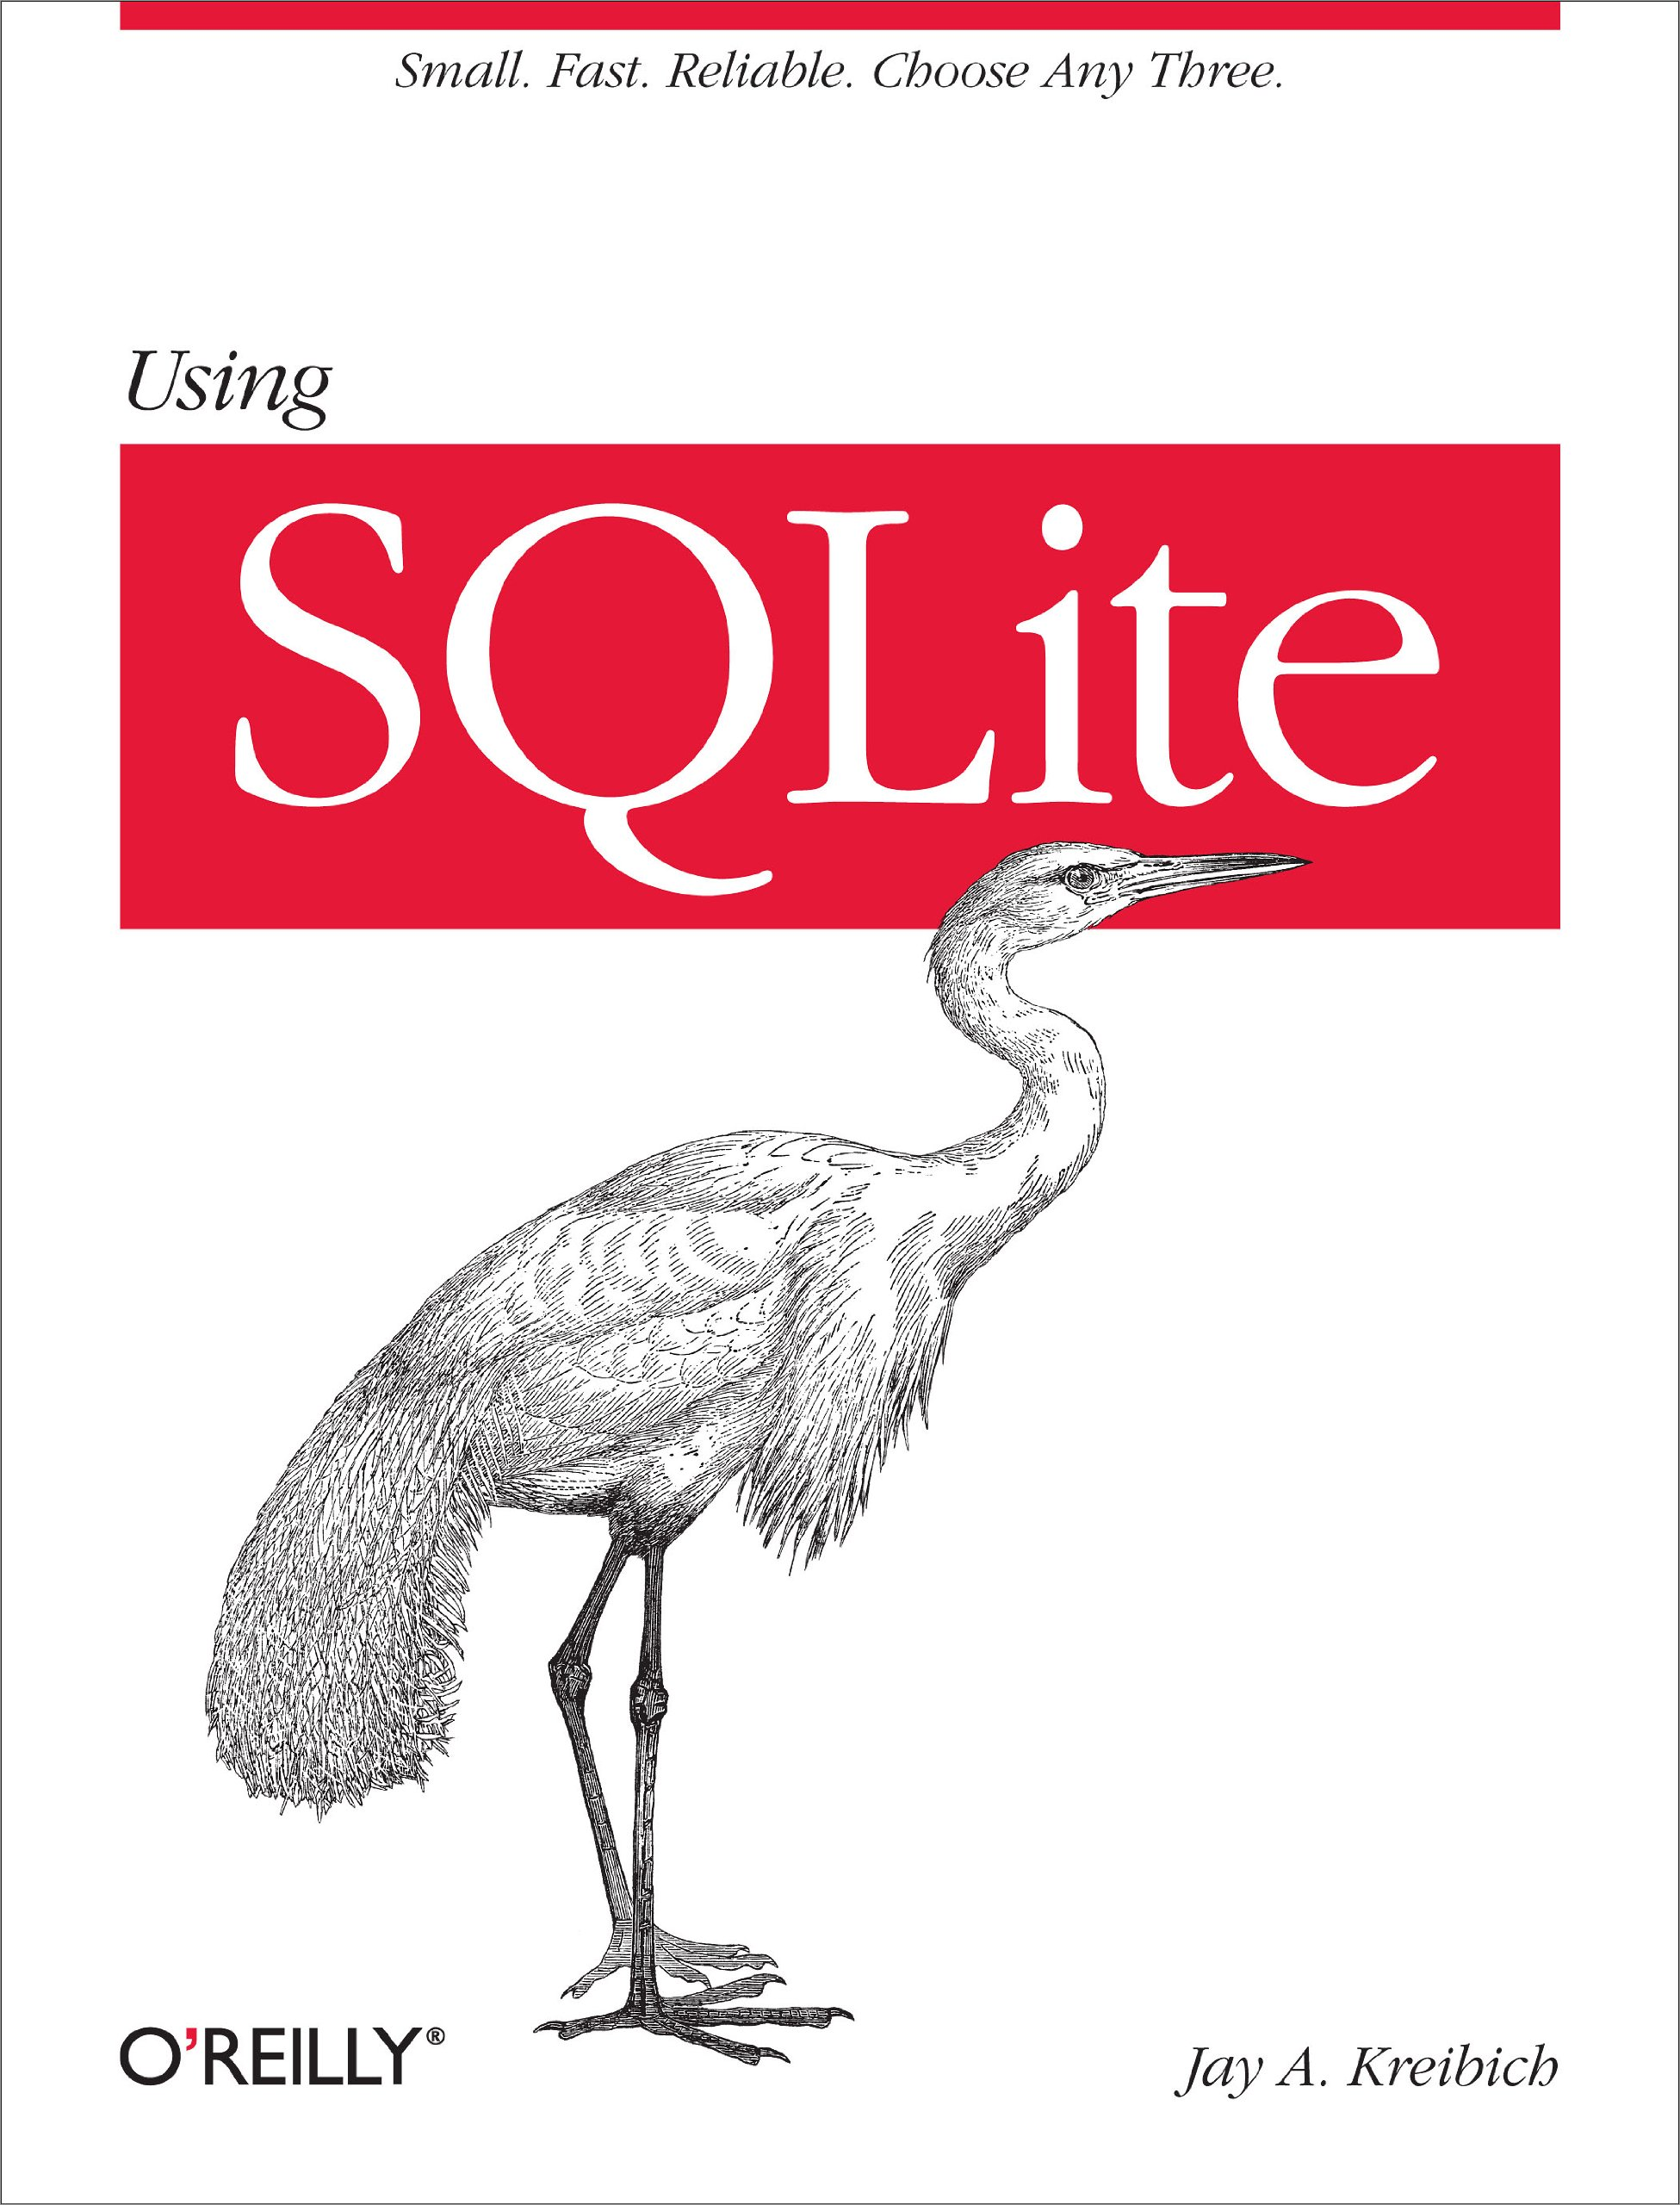 Download Using SQLite: Small. Fast. Reliable. Choose Any Three. (English Edition) 